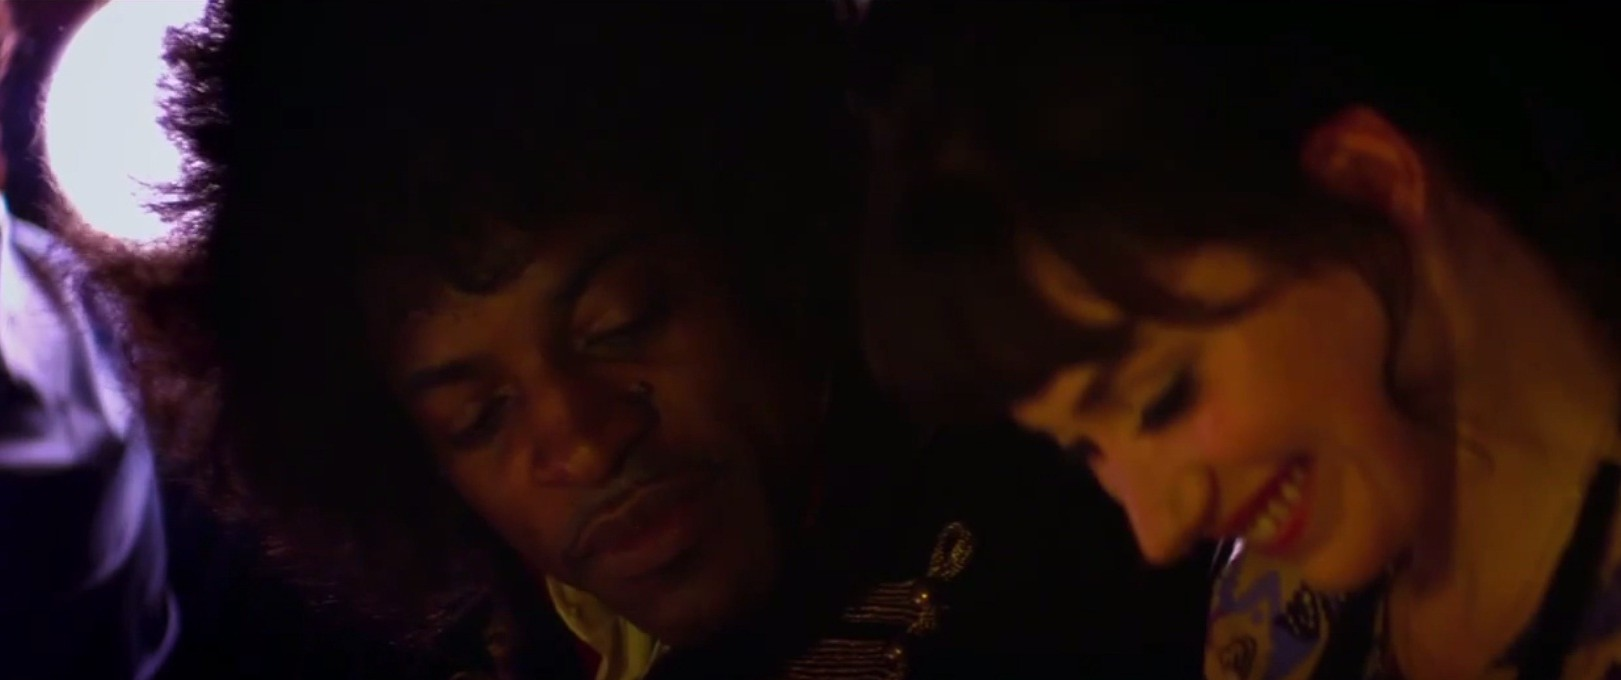 Watch Outkast's Andre 3000 as Jimi Hendrix in All Is By My Side